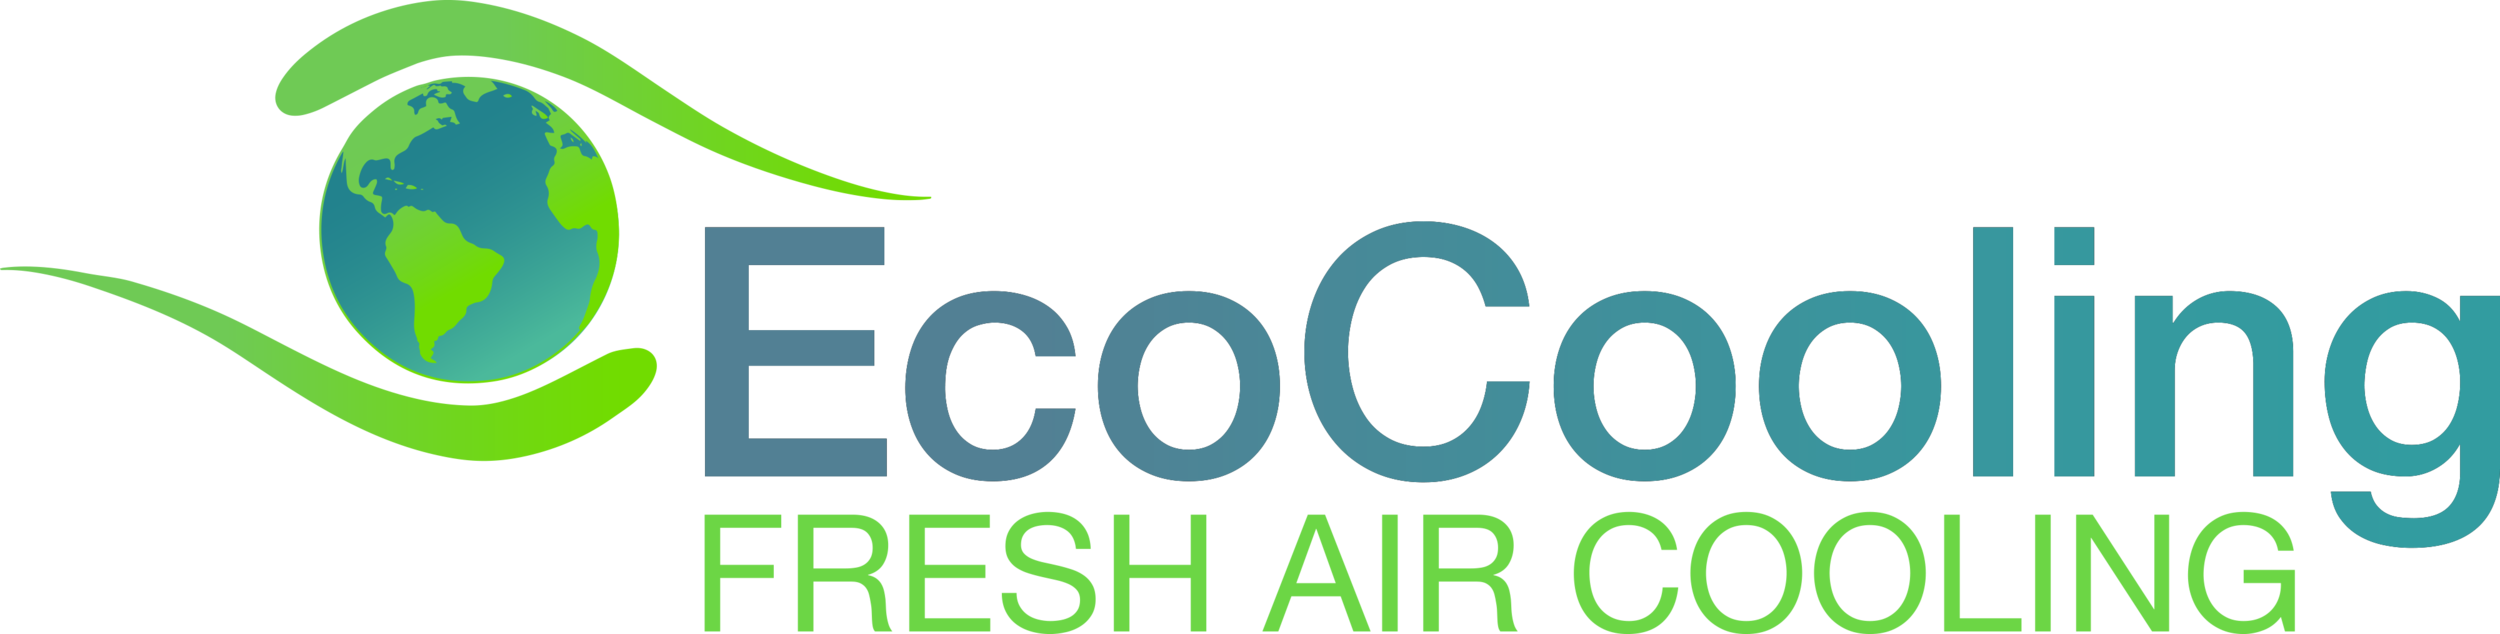 EcoCooling logo manufacturers of CloudCooler IT cooling range for data centres